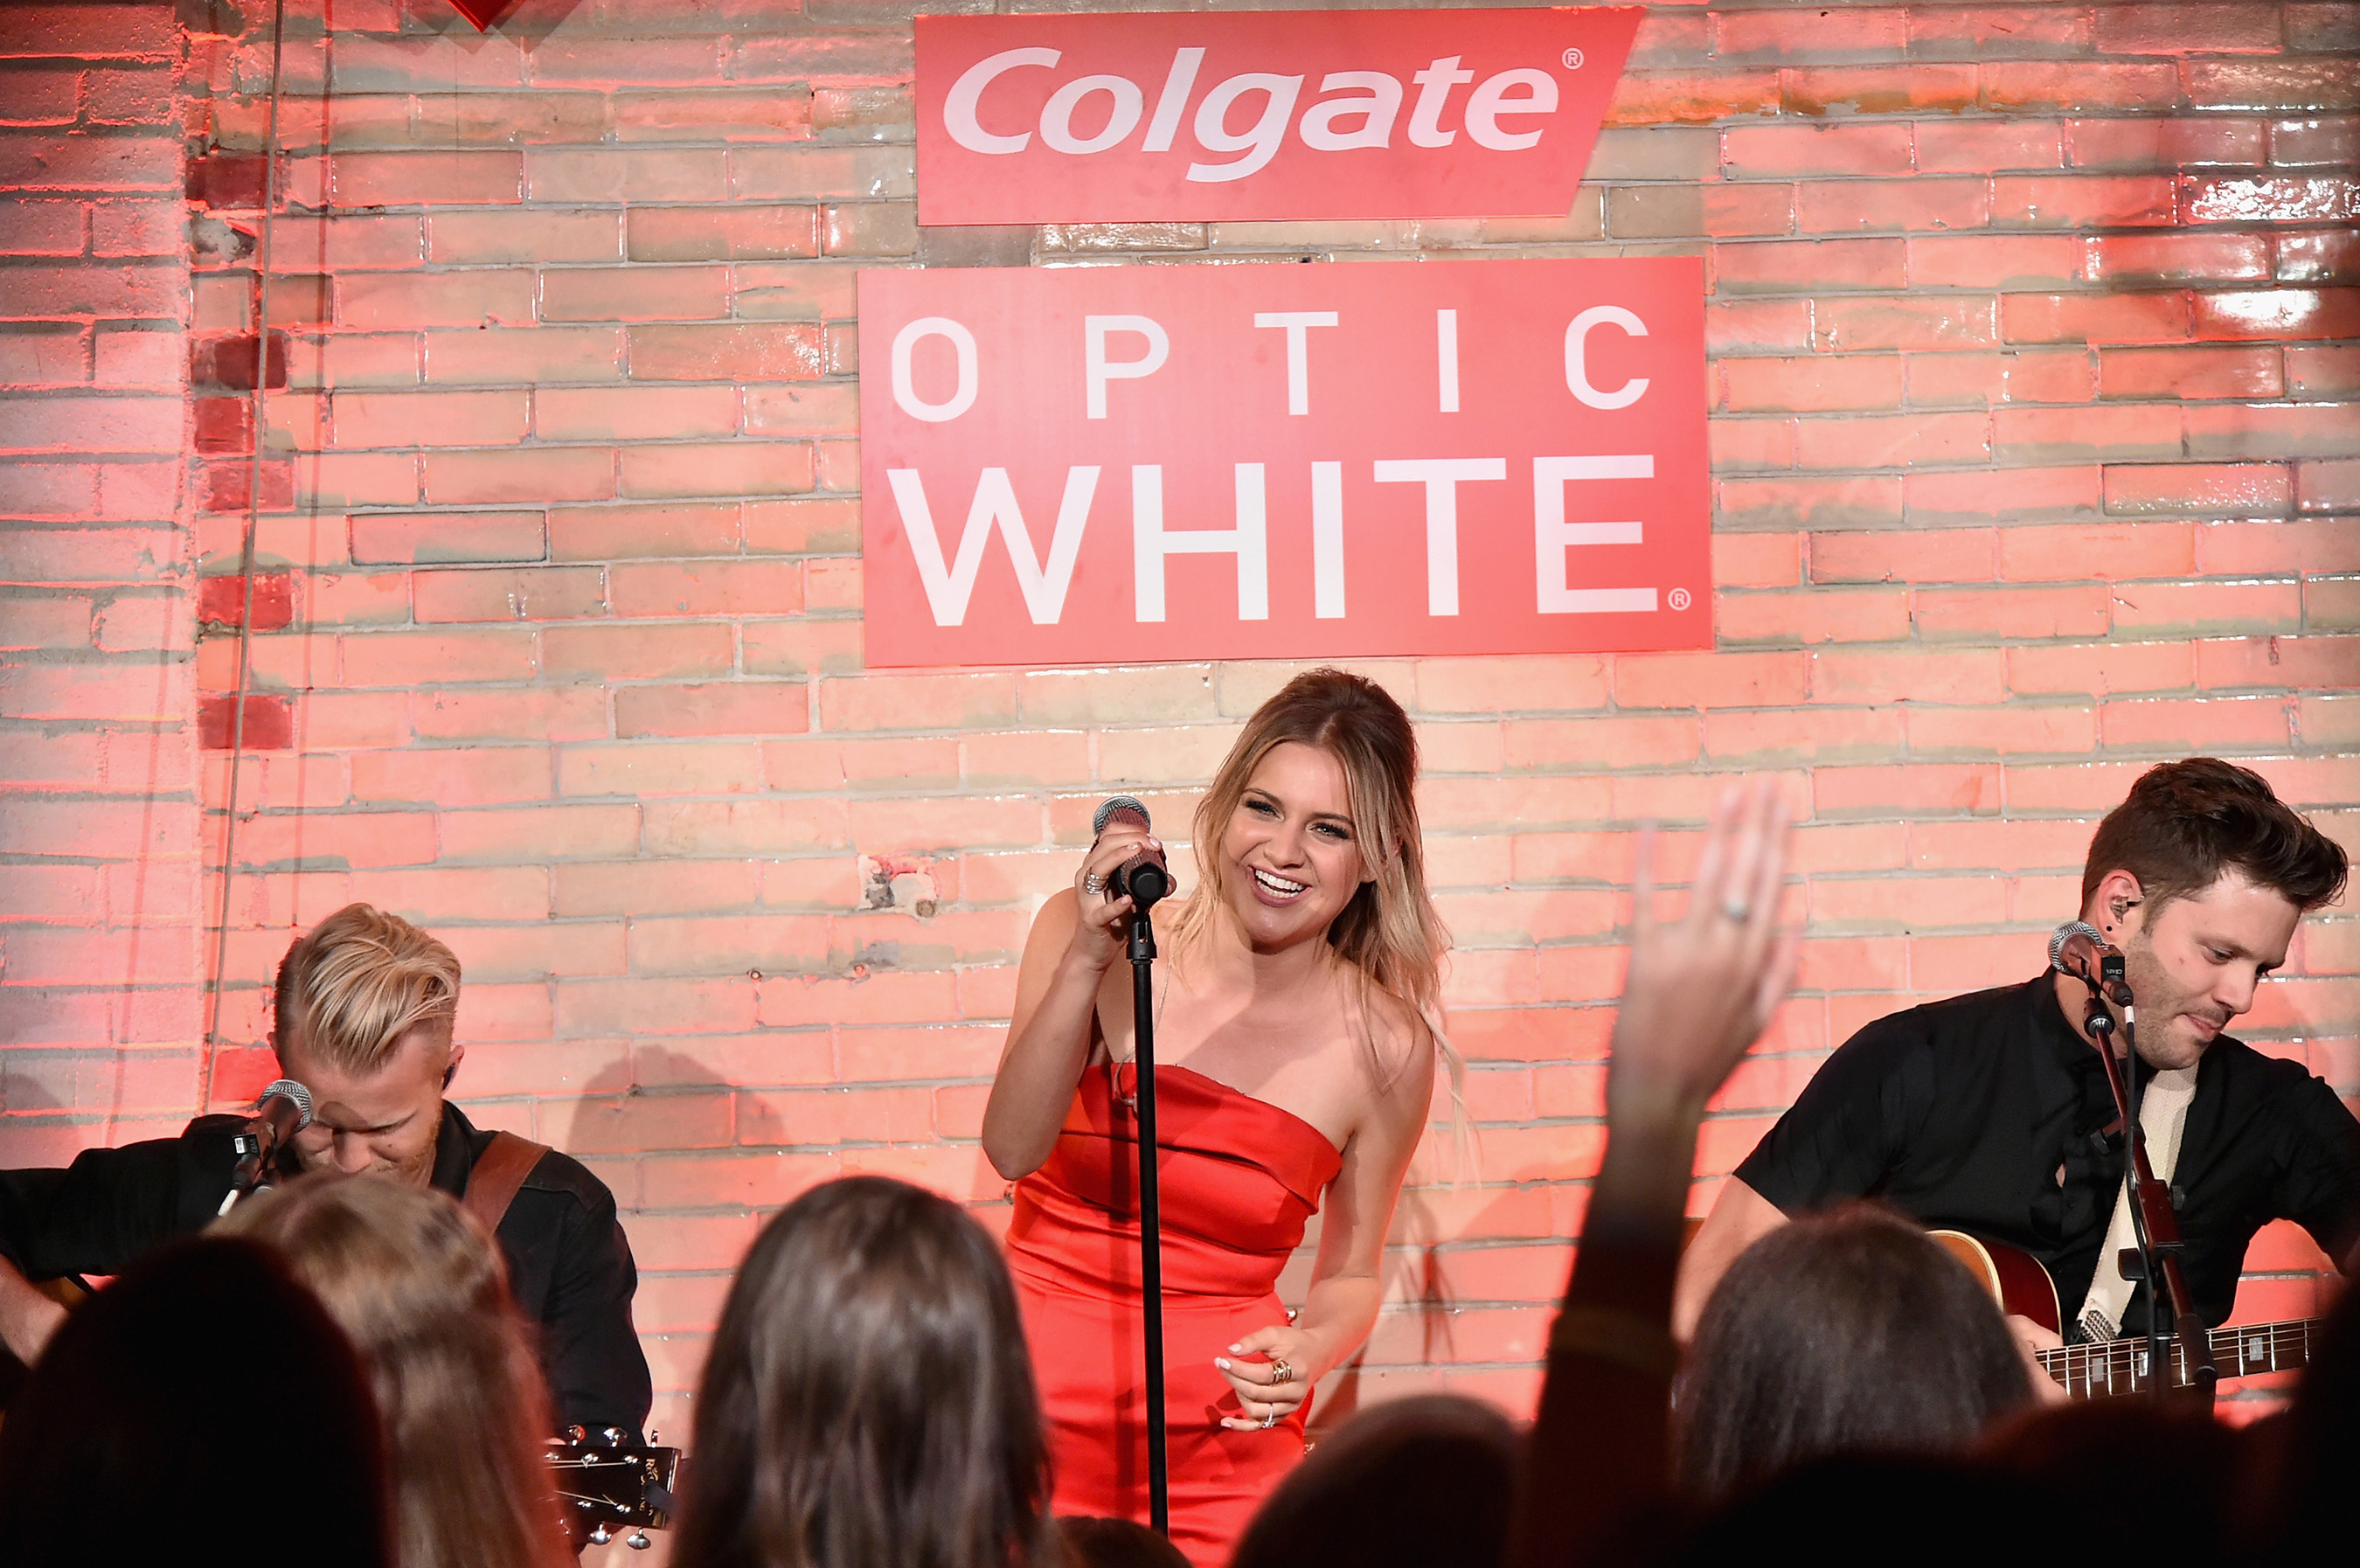 Kelsea Ballerini performs a private concert for fans, sponsored by Colgate Optic White